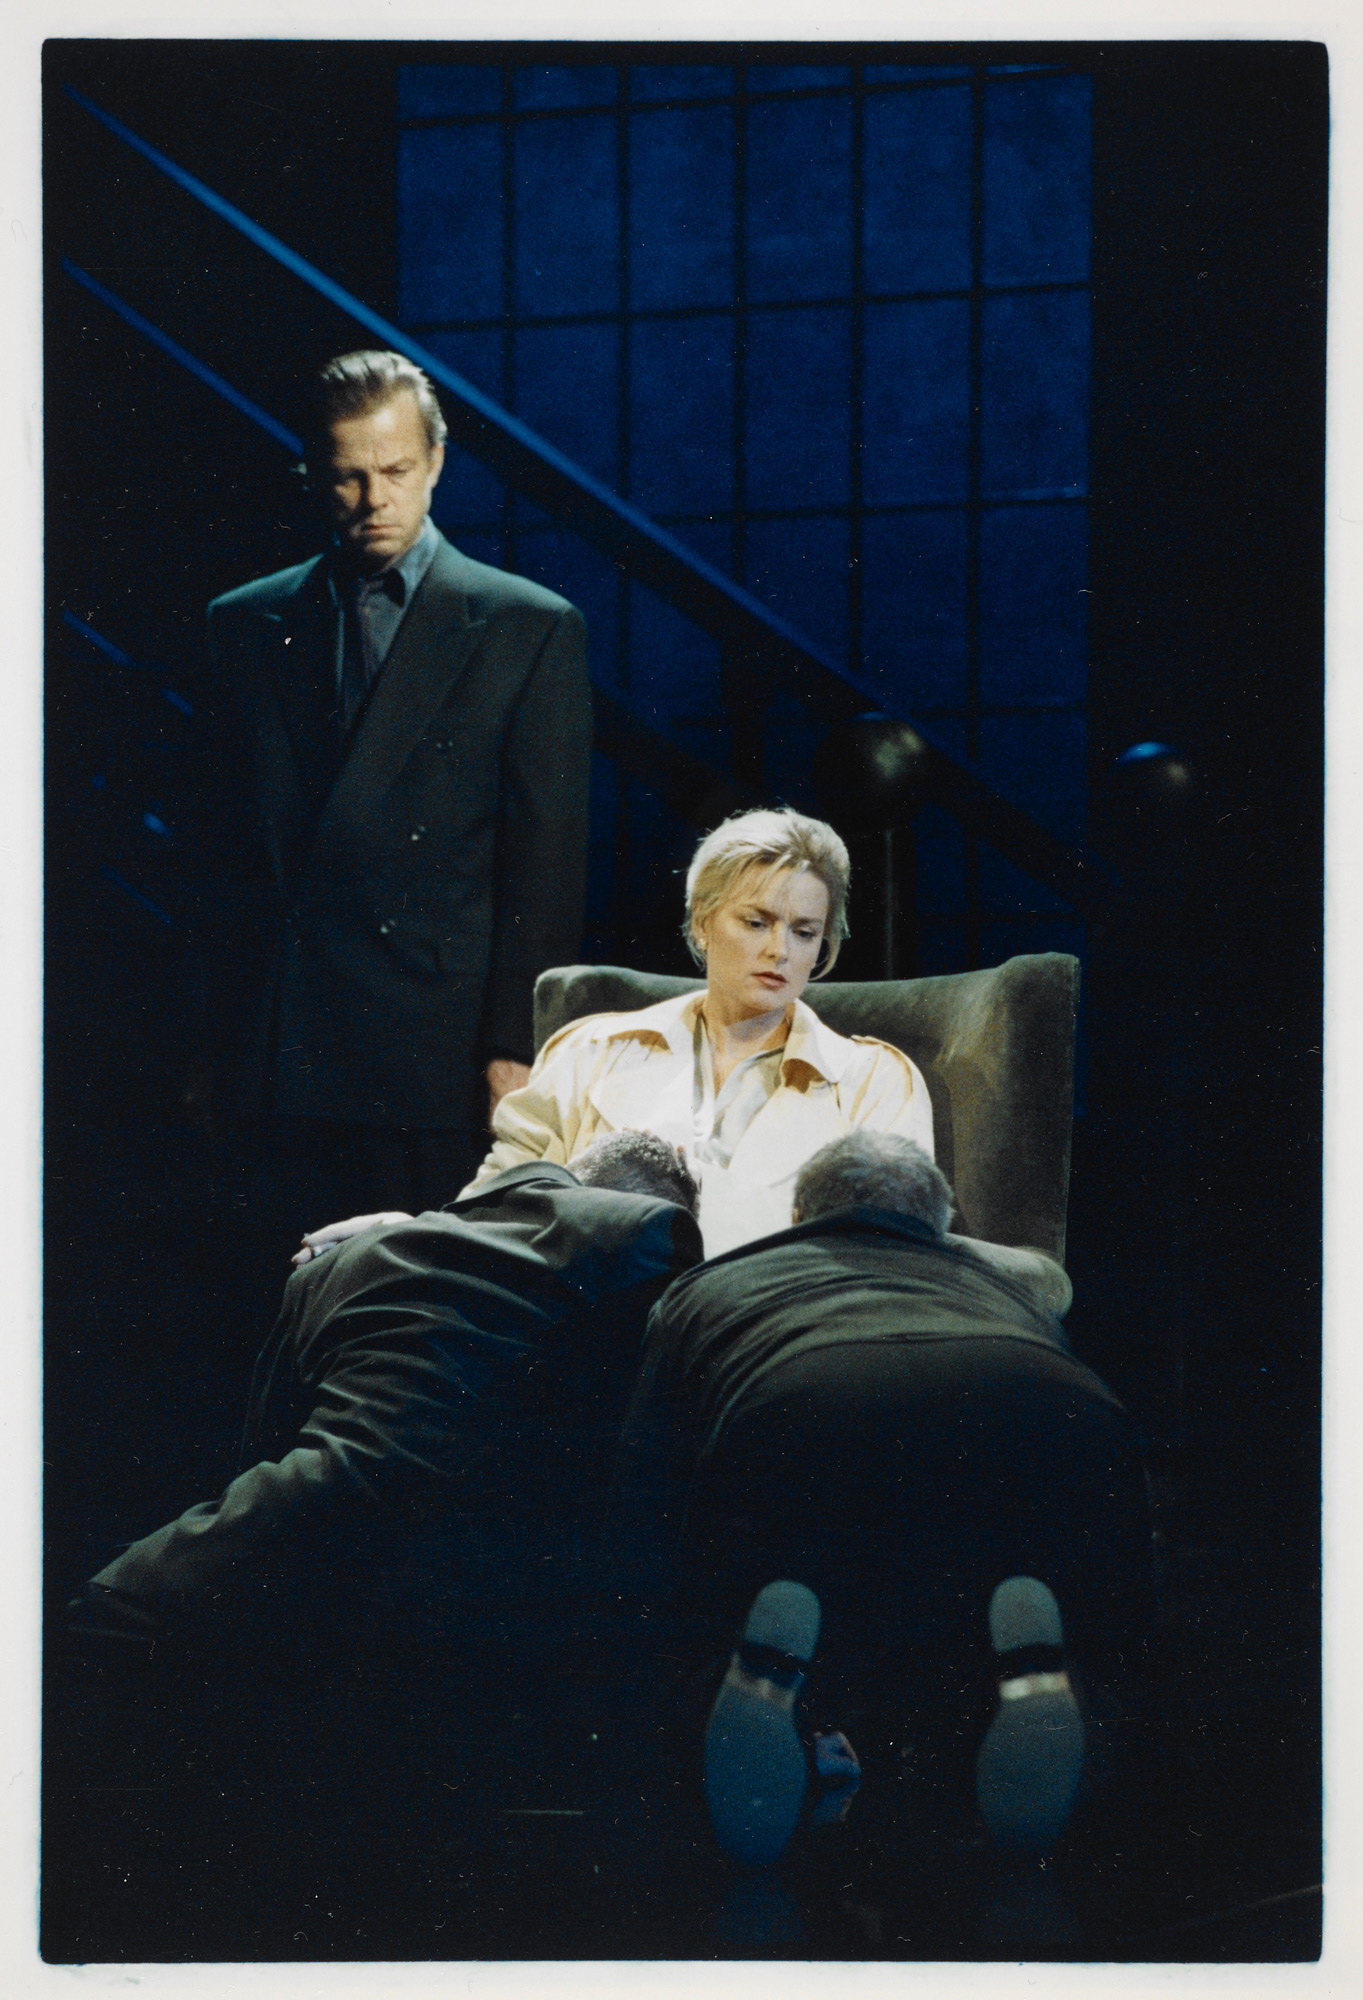 Photograph from a production of The Homecoming in Stockholm, 1993